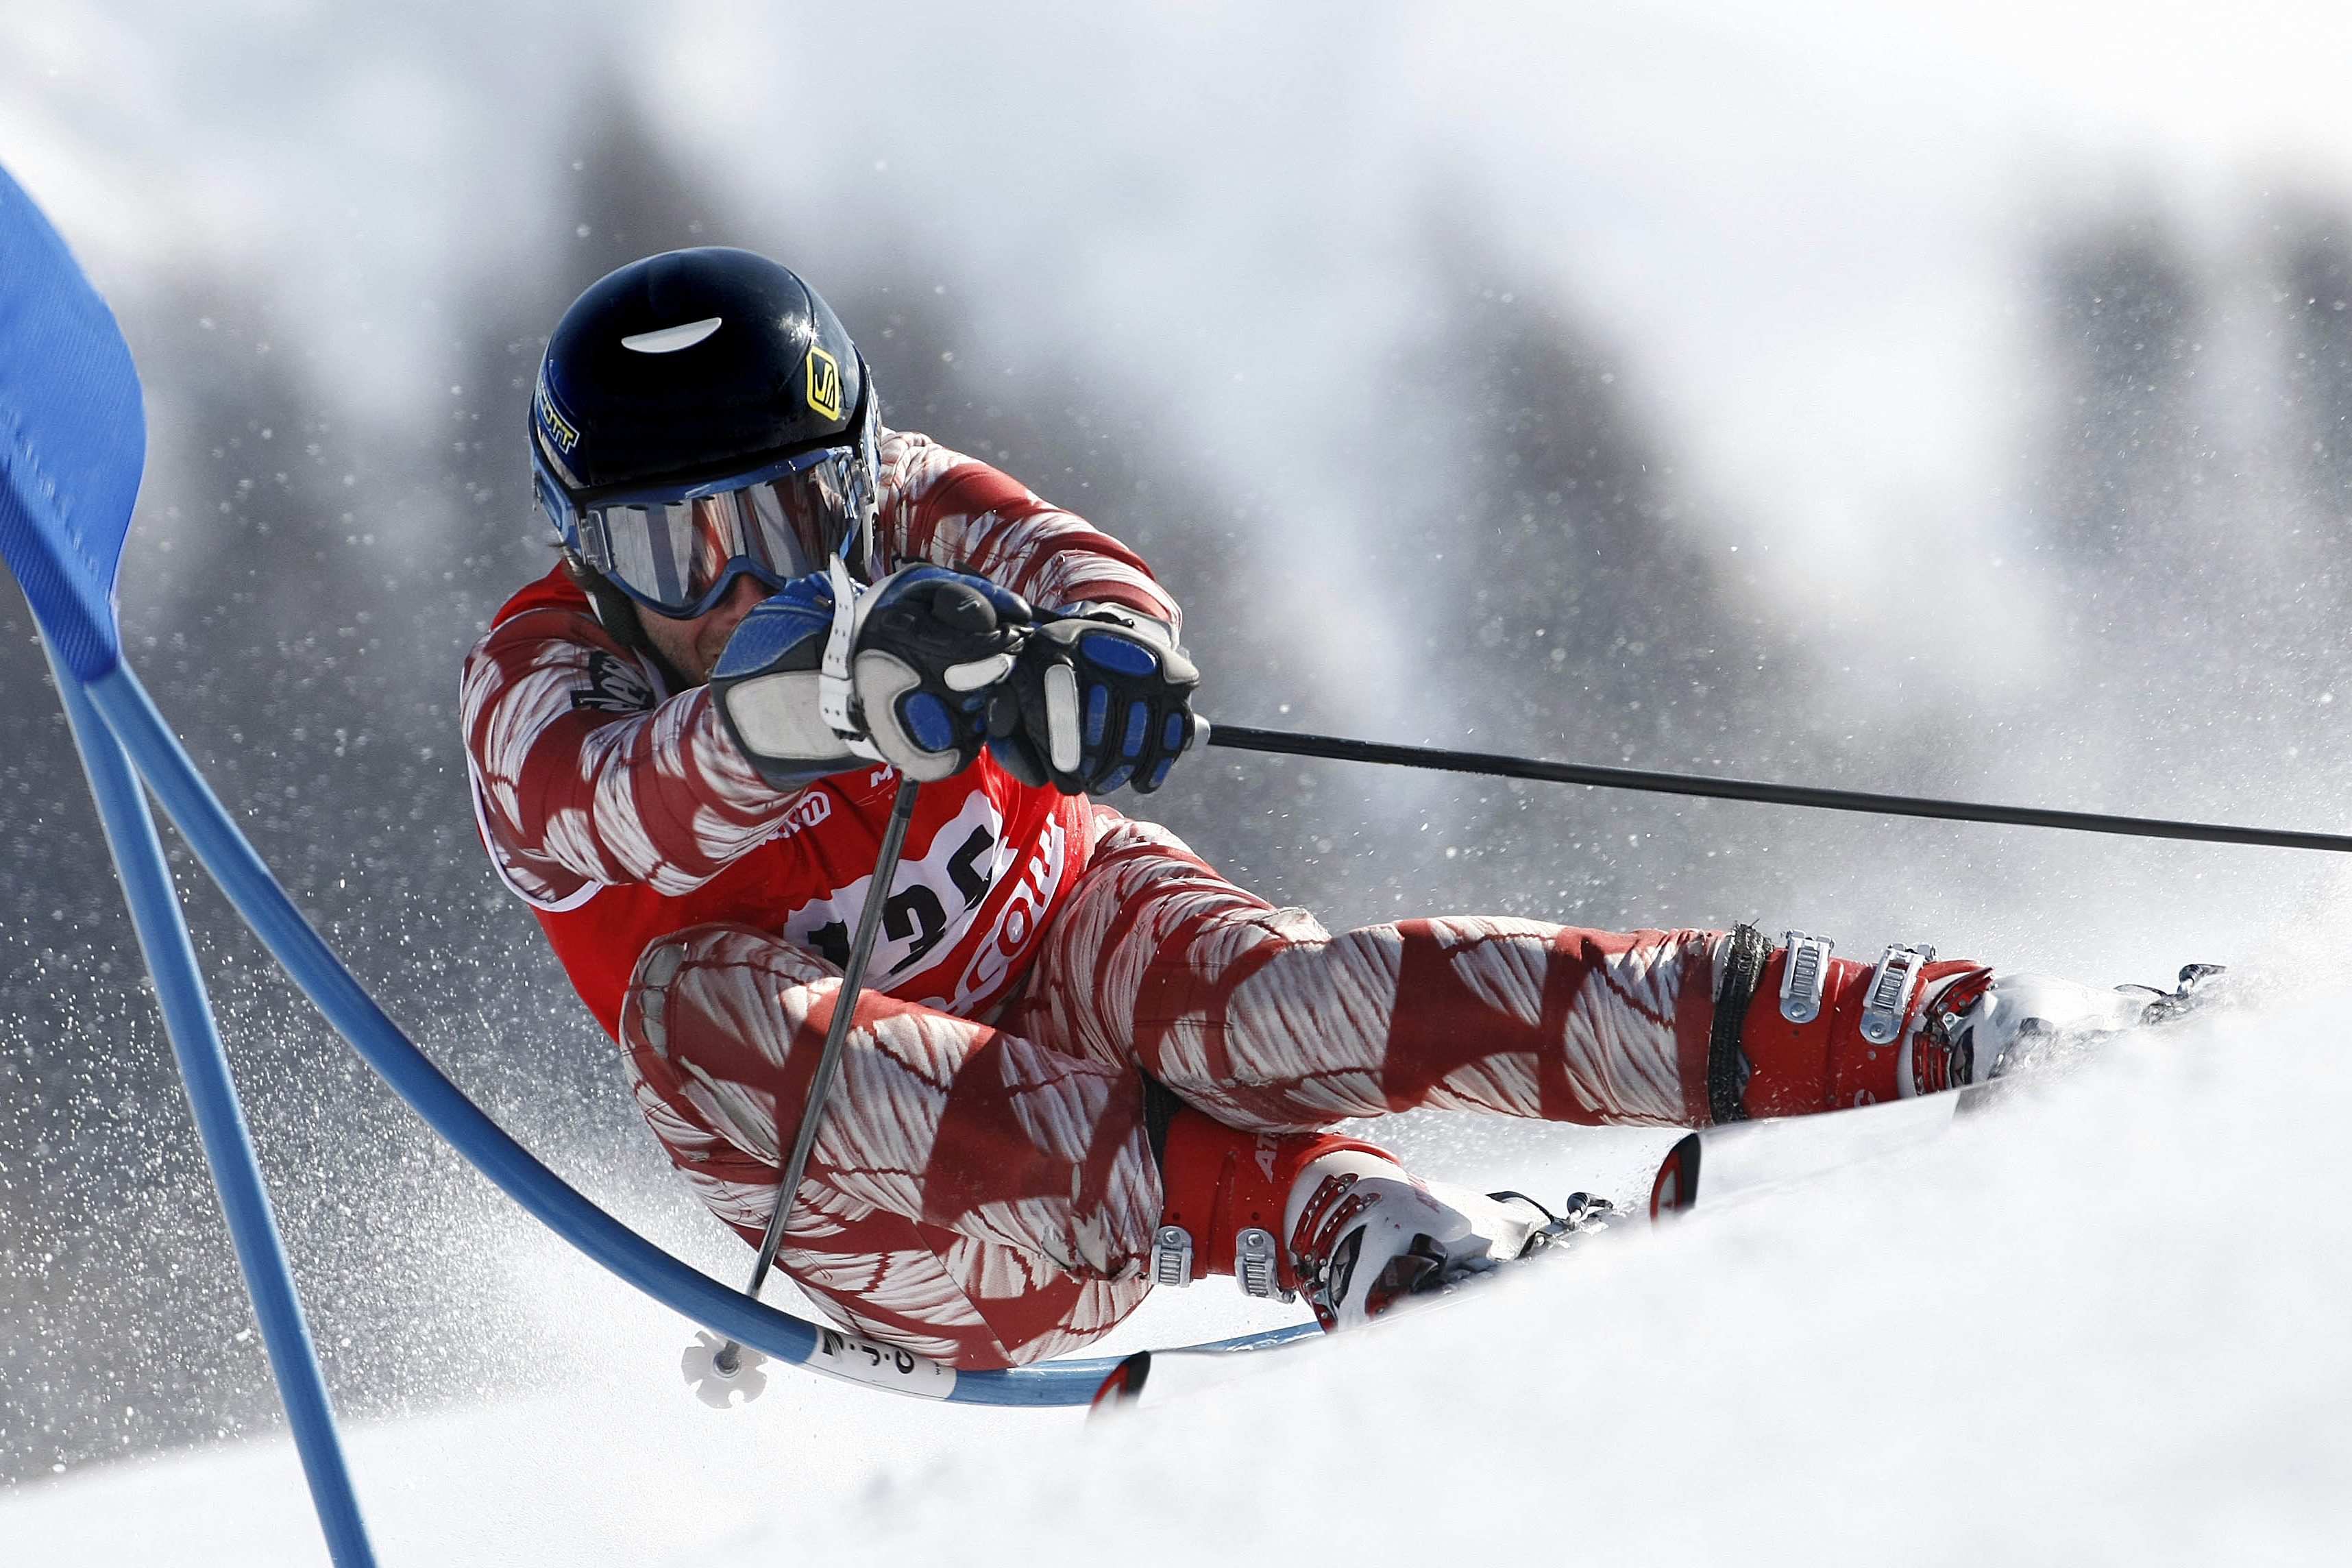 male alpine skier making a turn